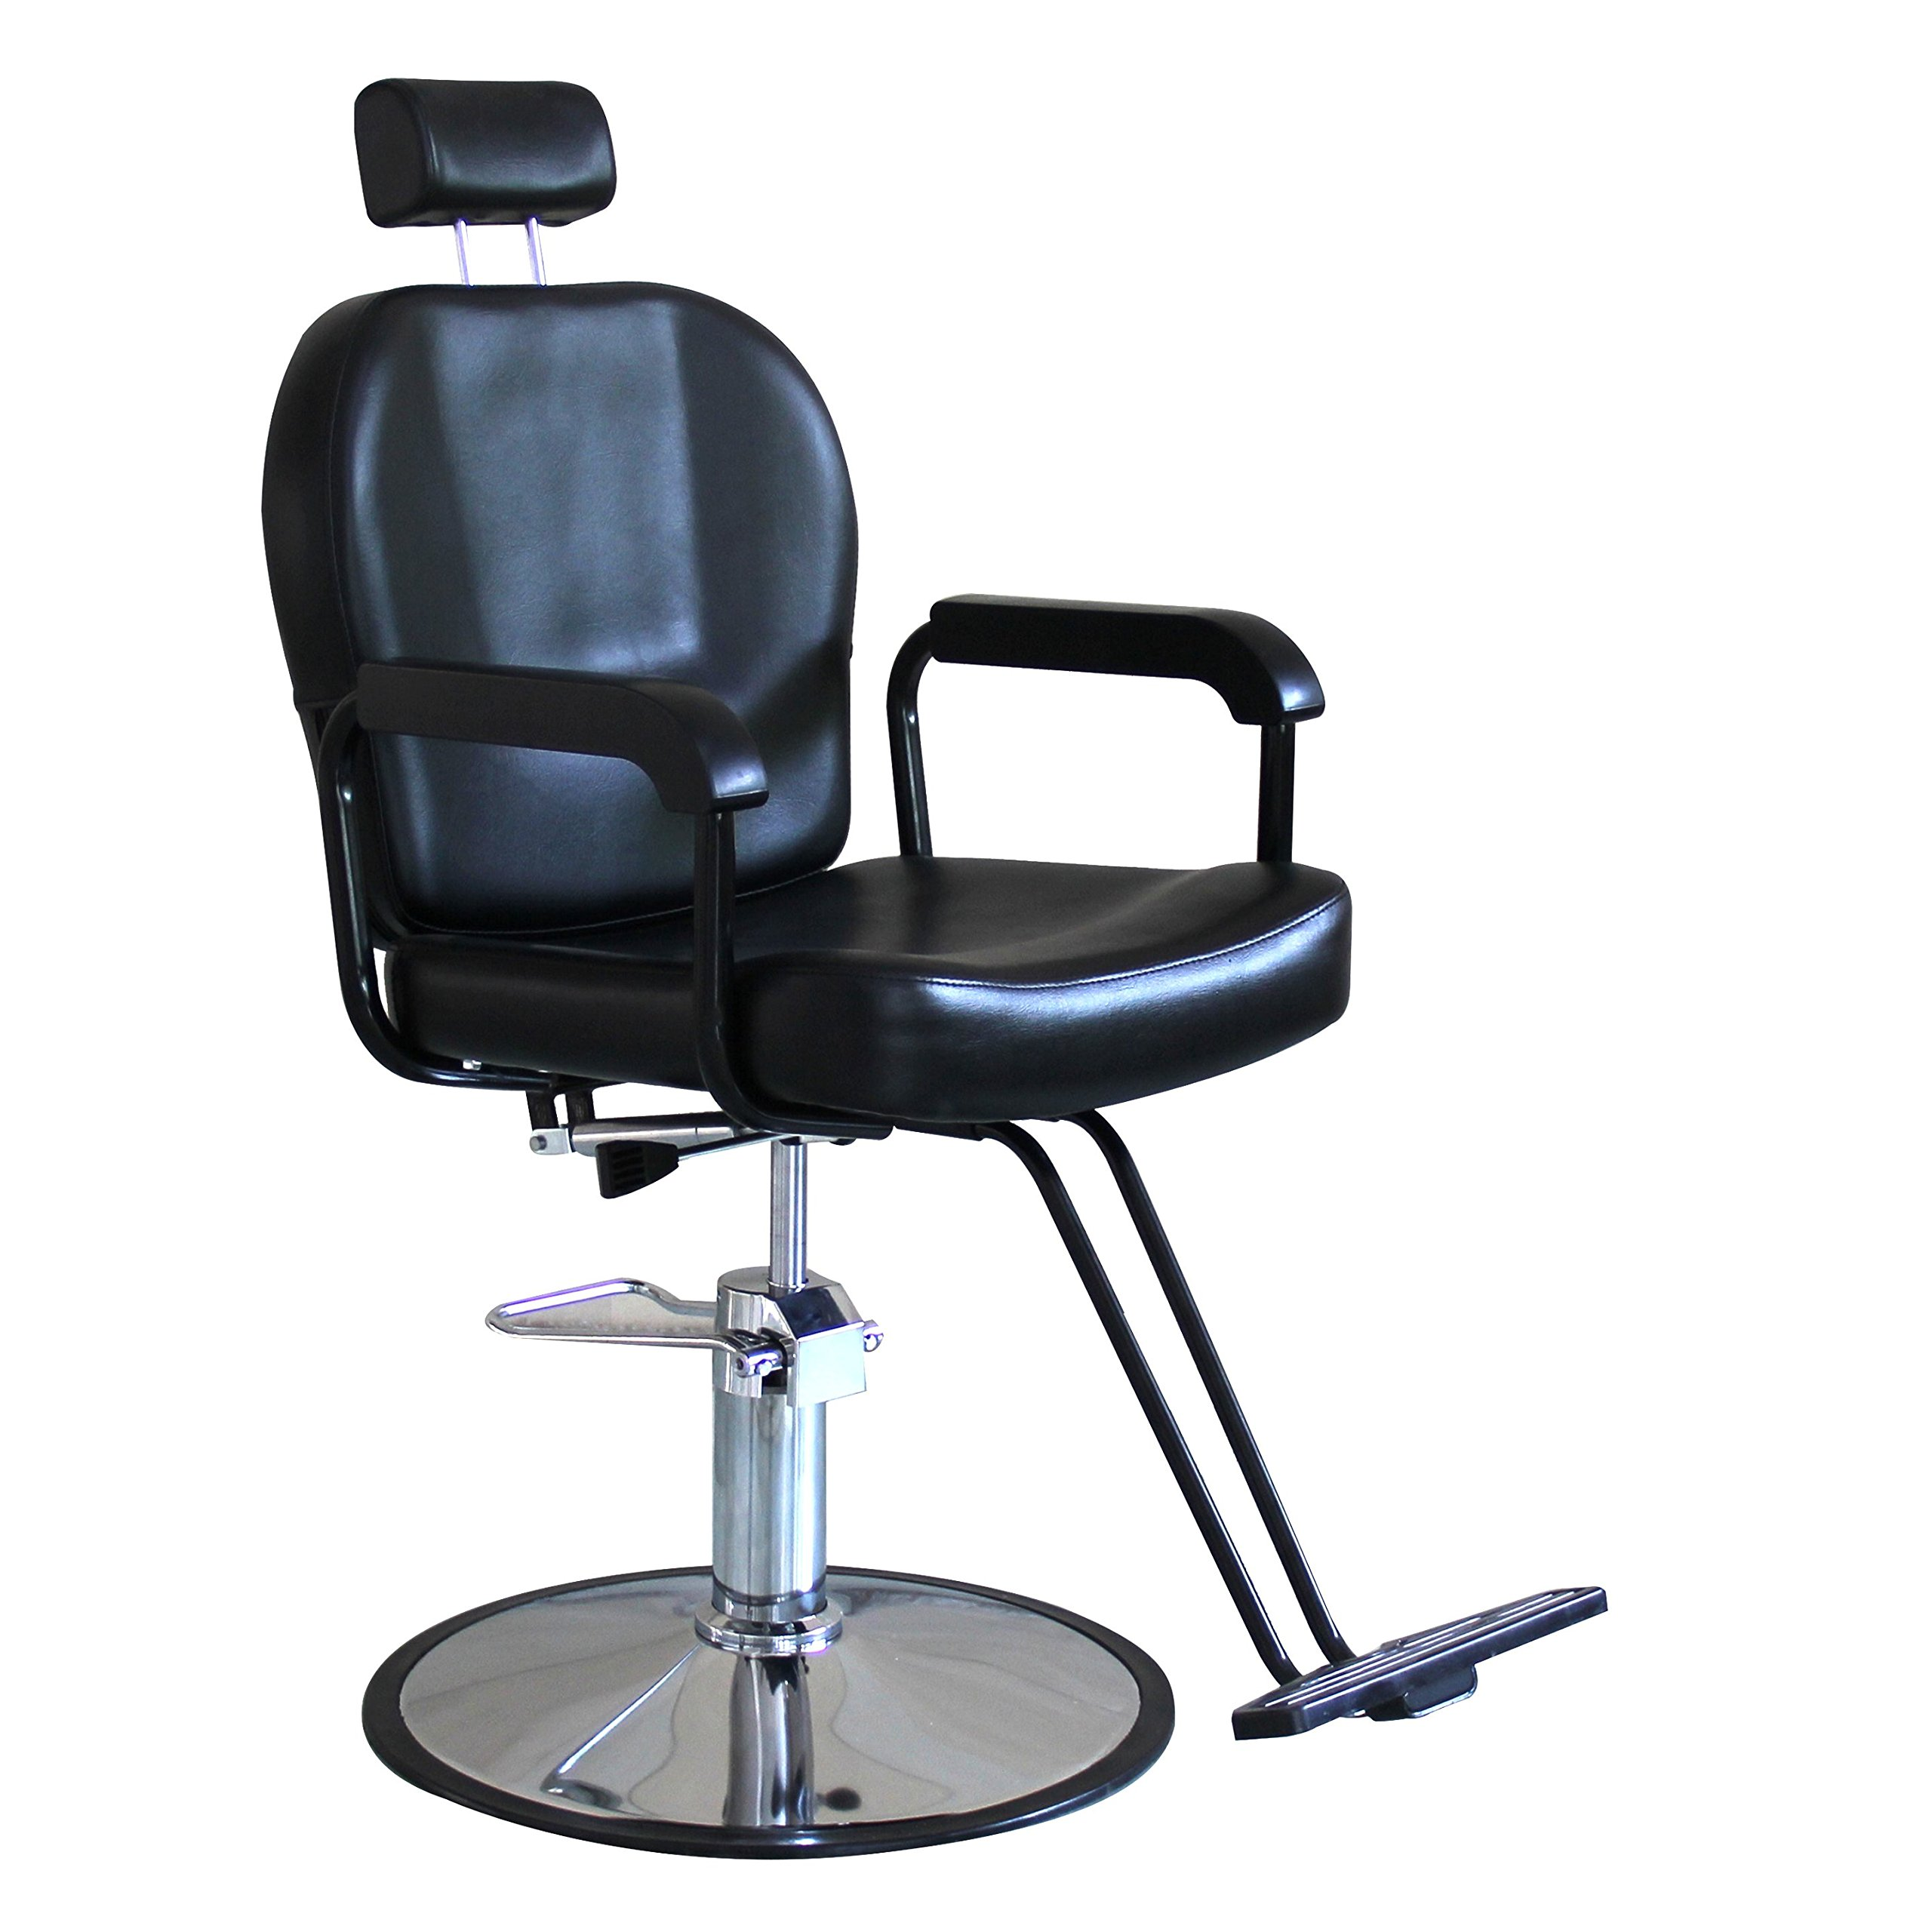 Shengyu Black Recline Hydraulic Styling Barber Chair Hair Spa Beauty Salon Equipment by Shengyu